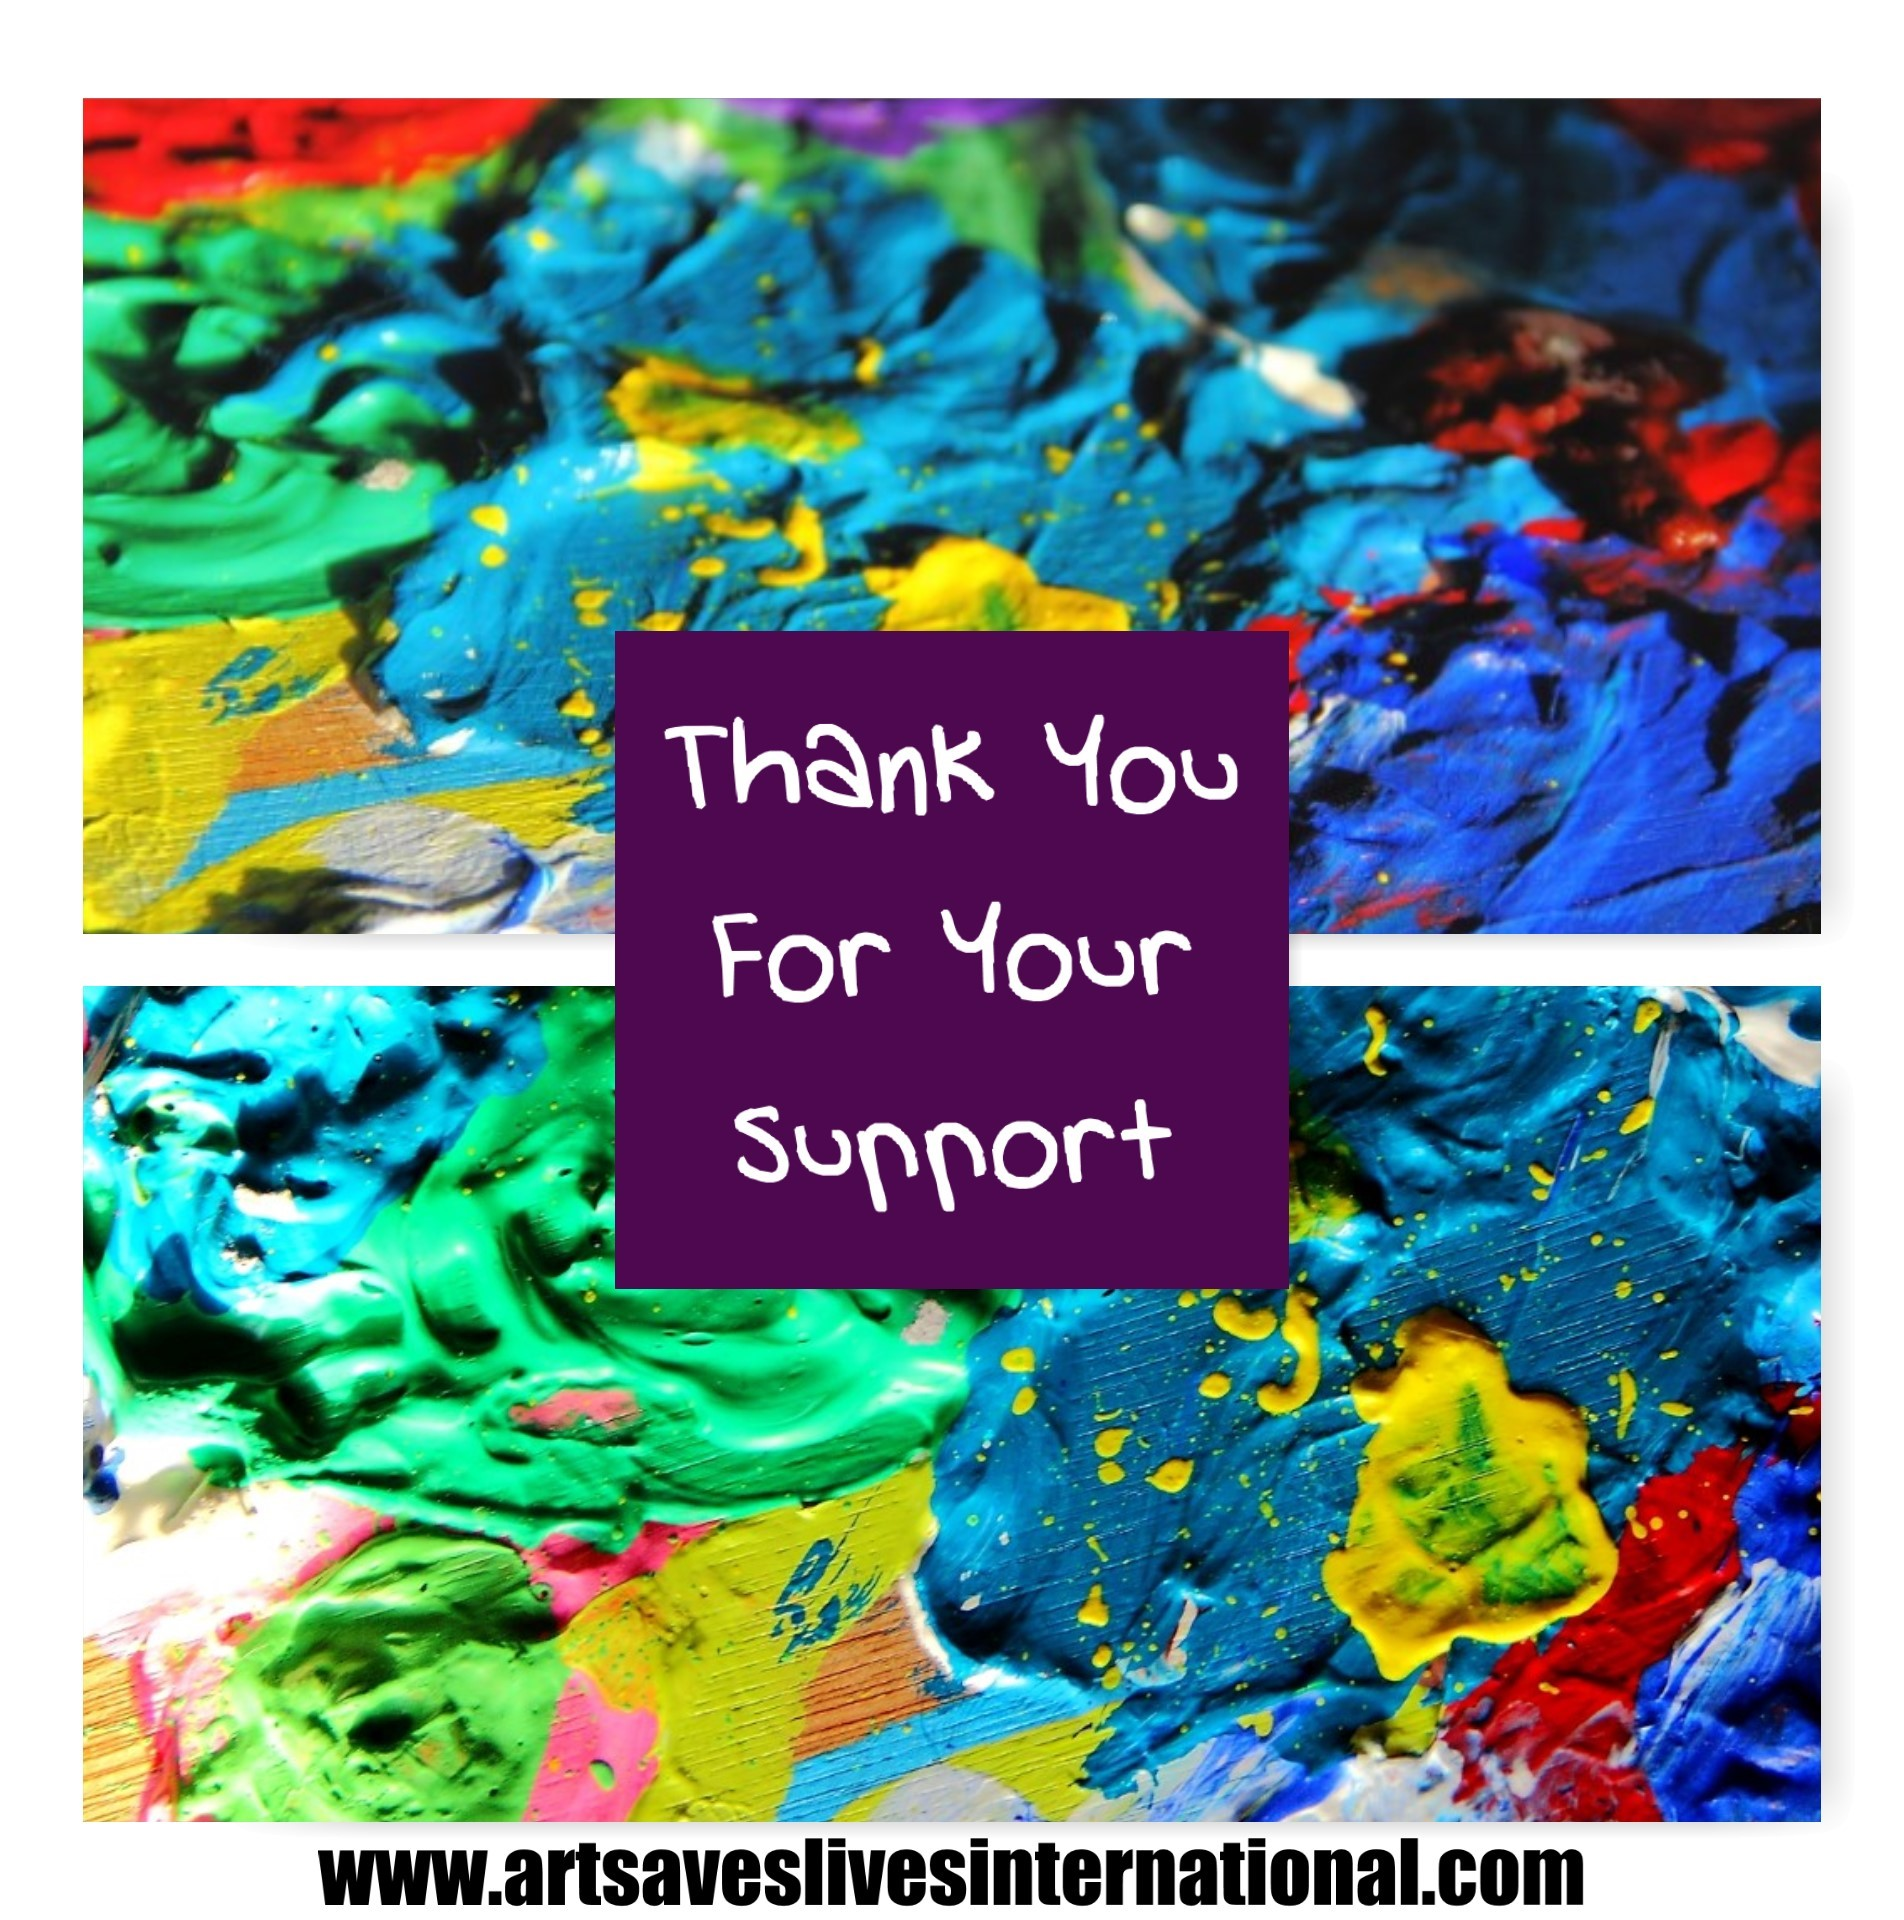 Thank you for your support.